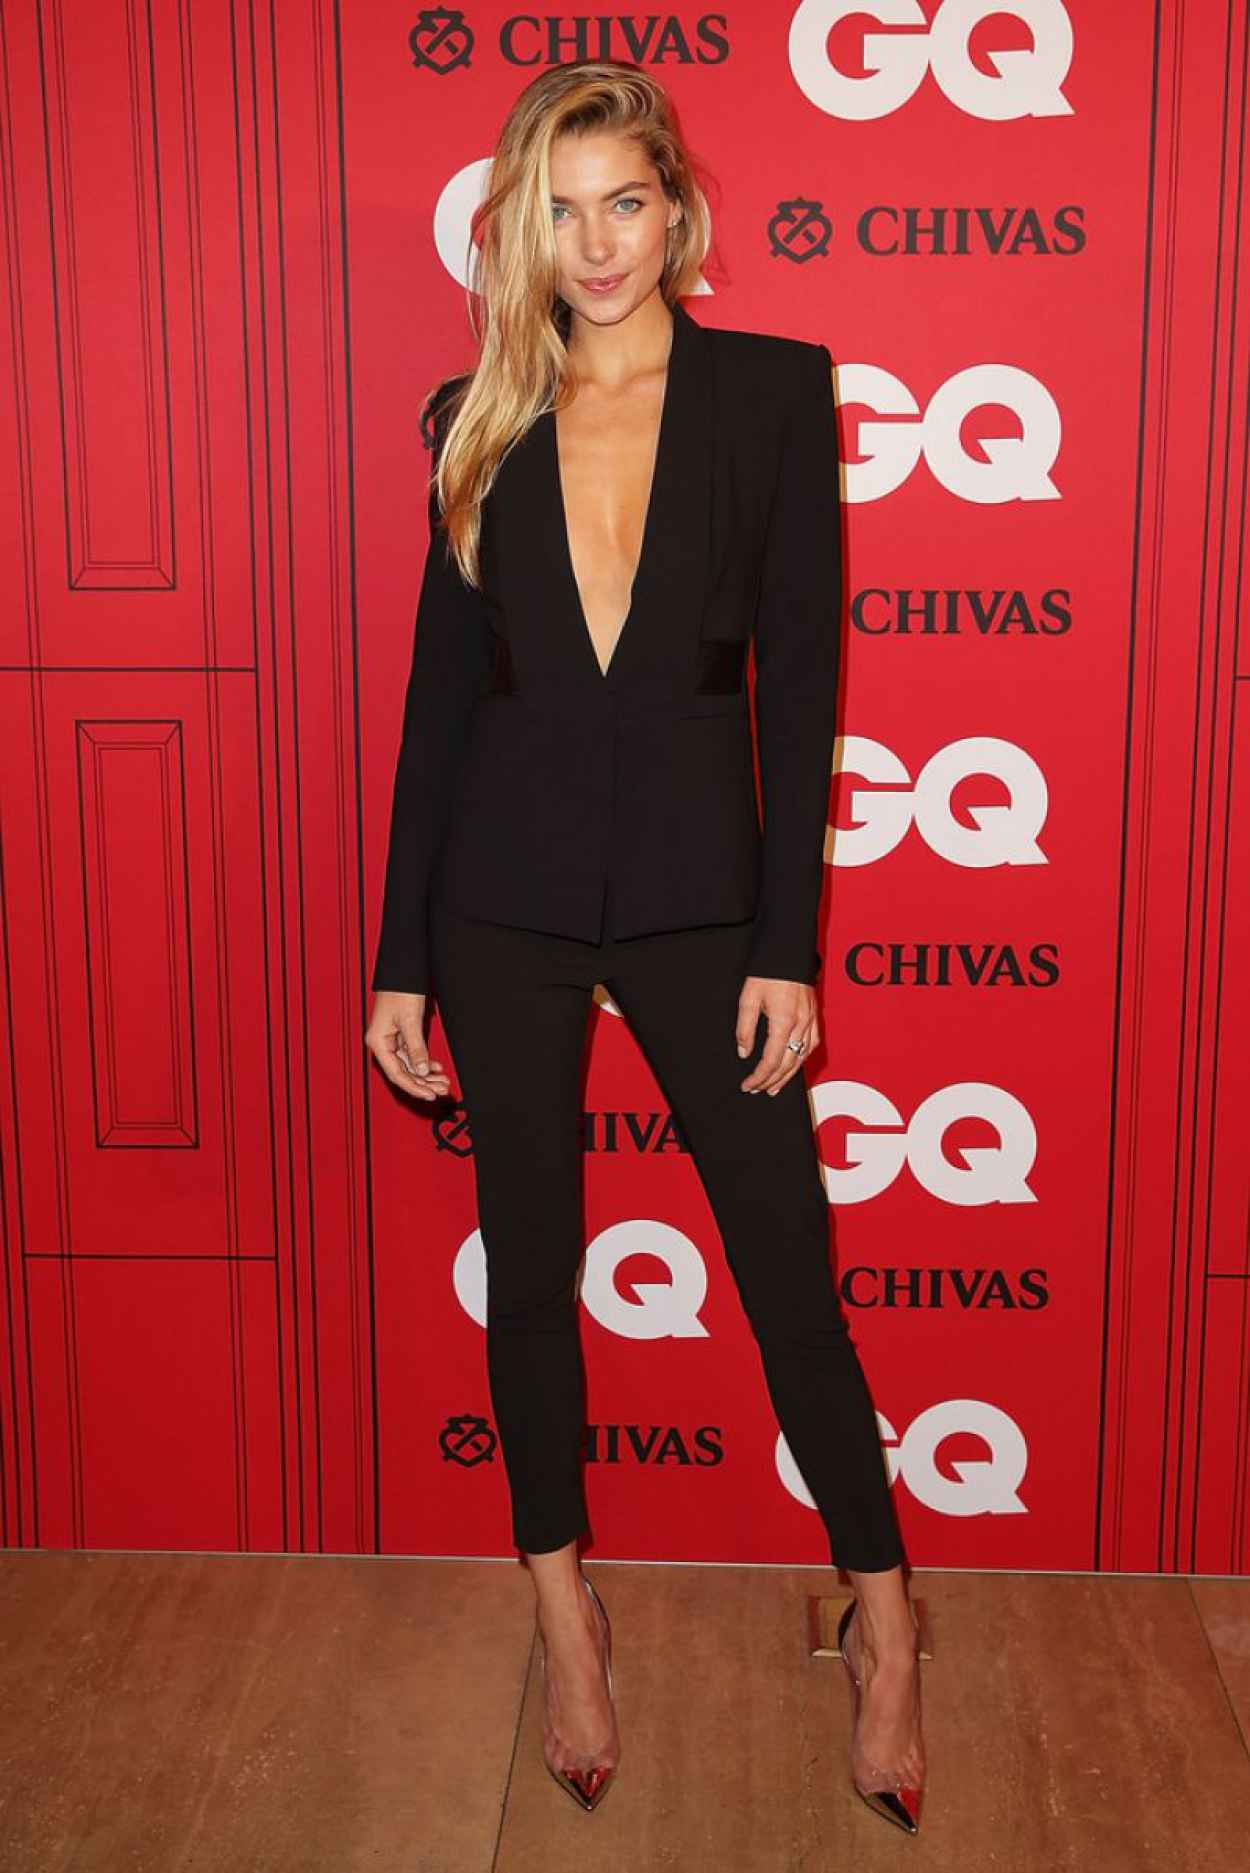 Jessica Hart Attends GQ Men of the Year Awards in Sydney - November 2015-1